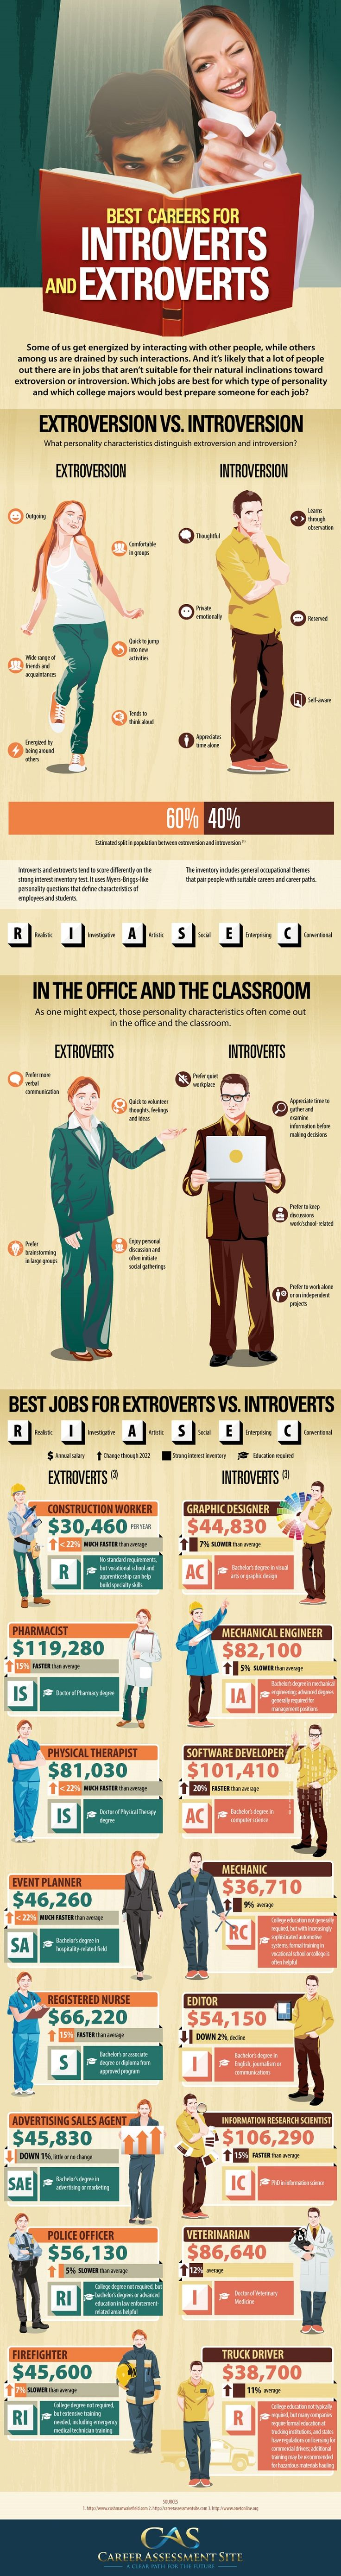 Your personality type is important, but when choosing a career go for what you enjoy and what you're good at.